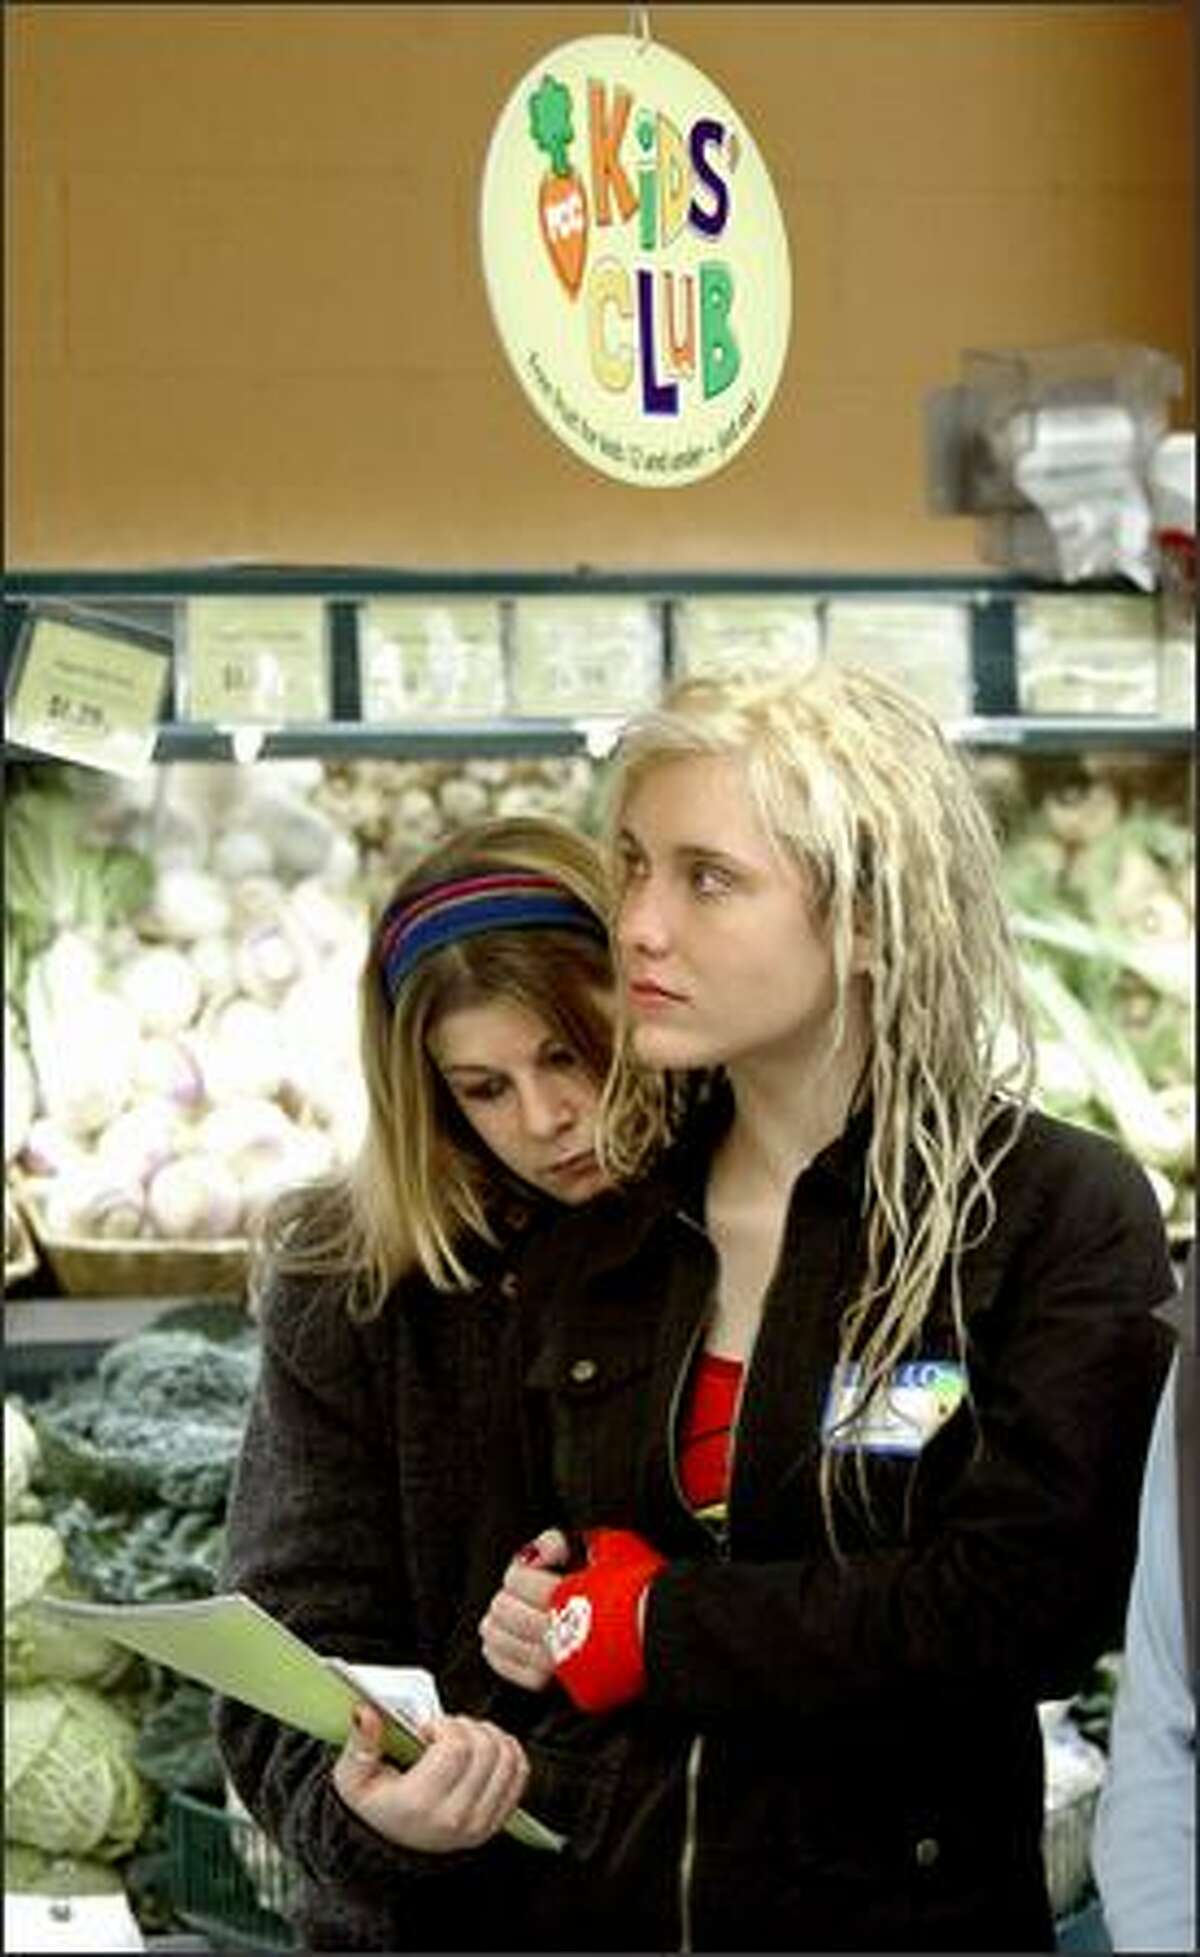 Sydney Smith, 15, left, and Naomi Picinich, 17, listen to a talk about organic foods at the Seward Park PCC.